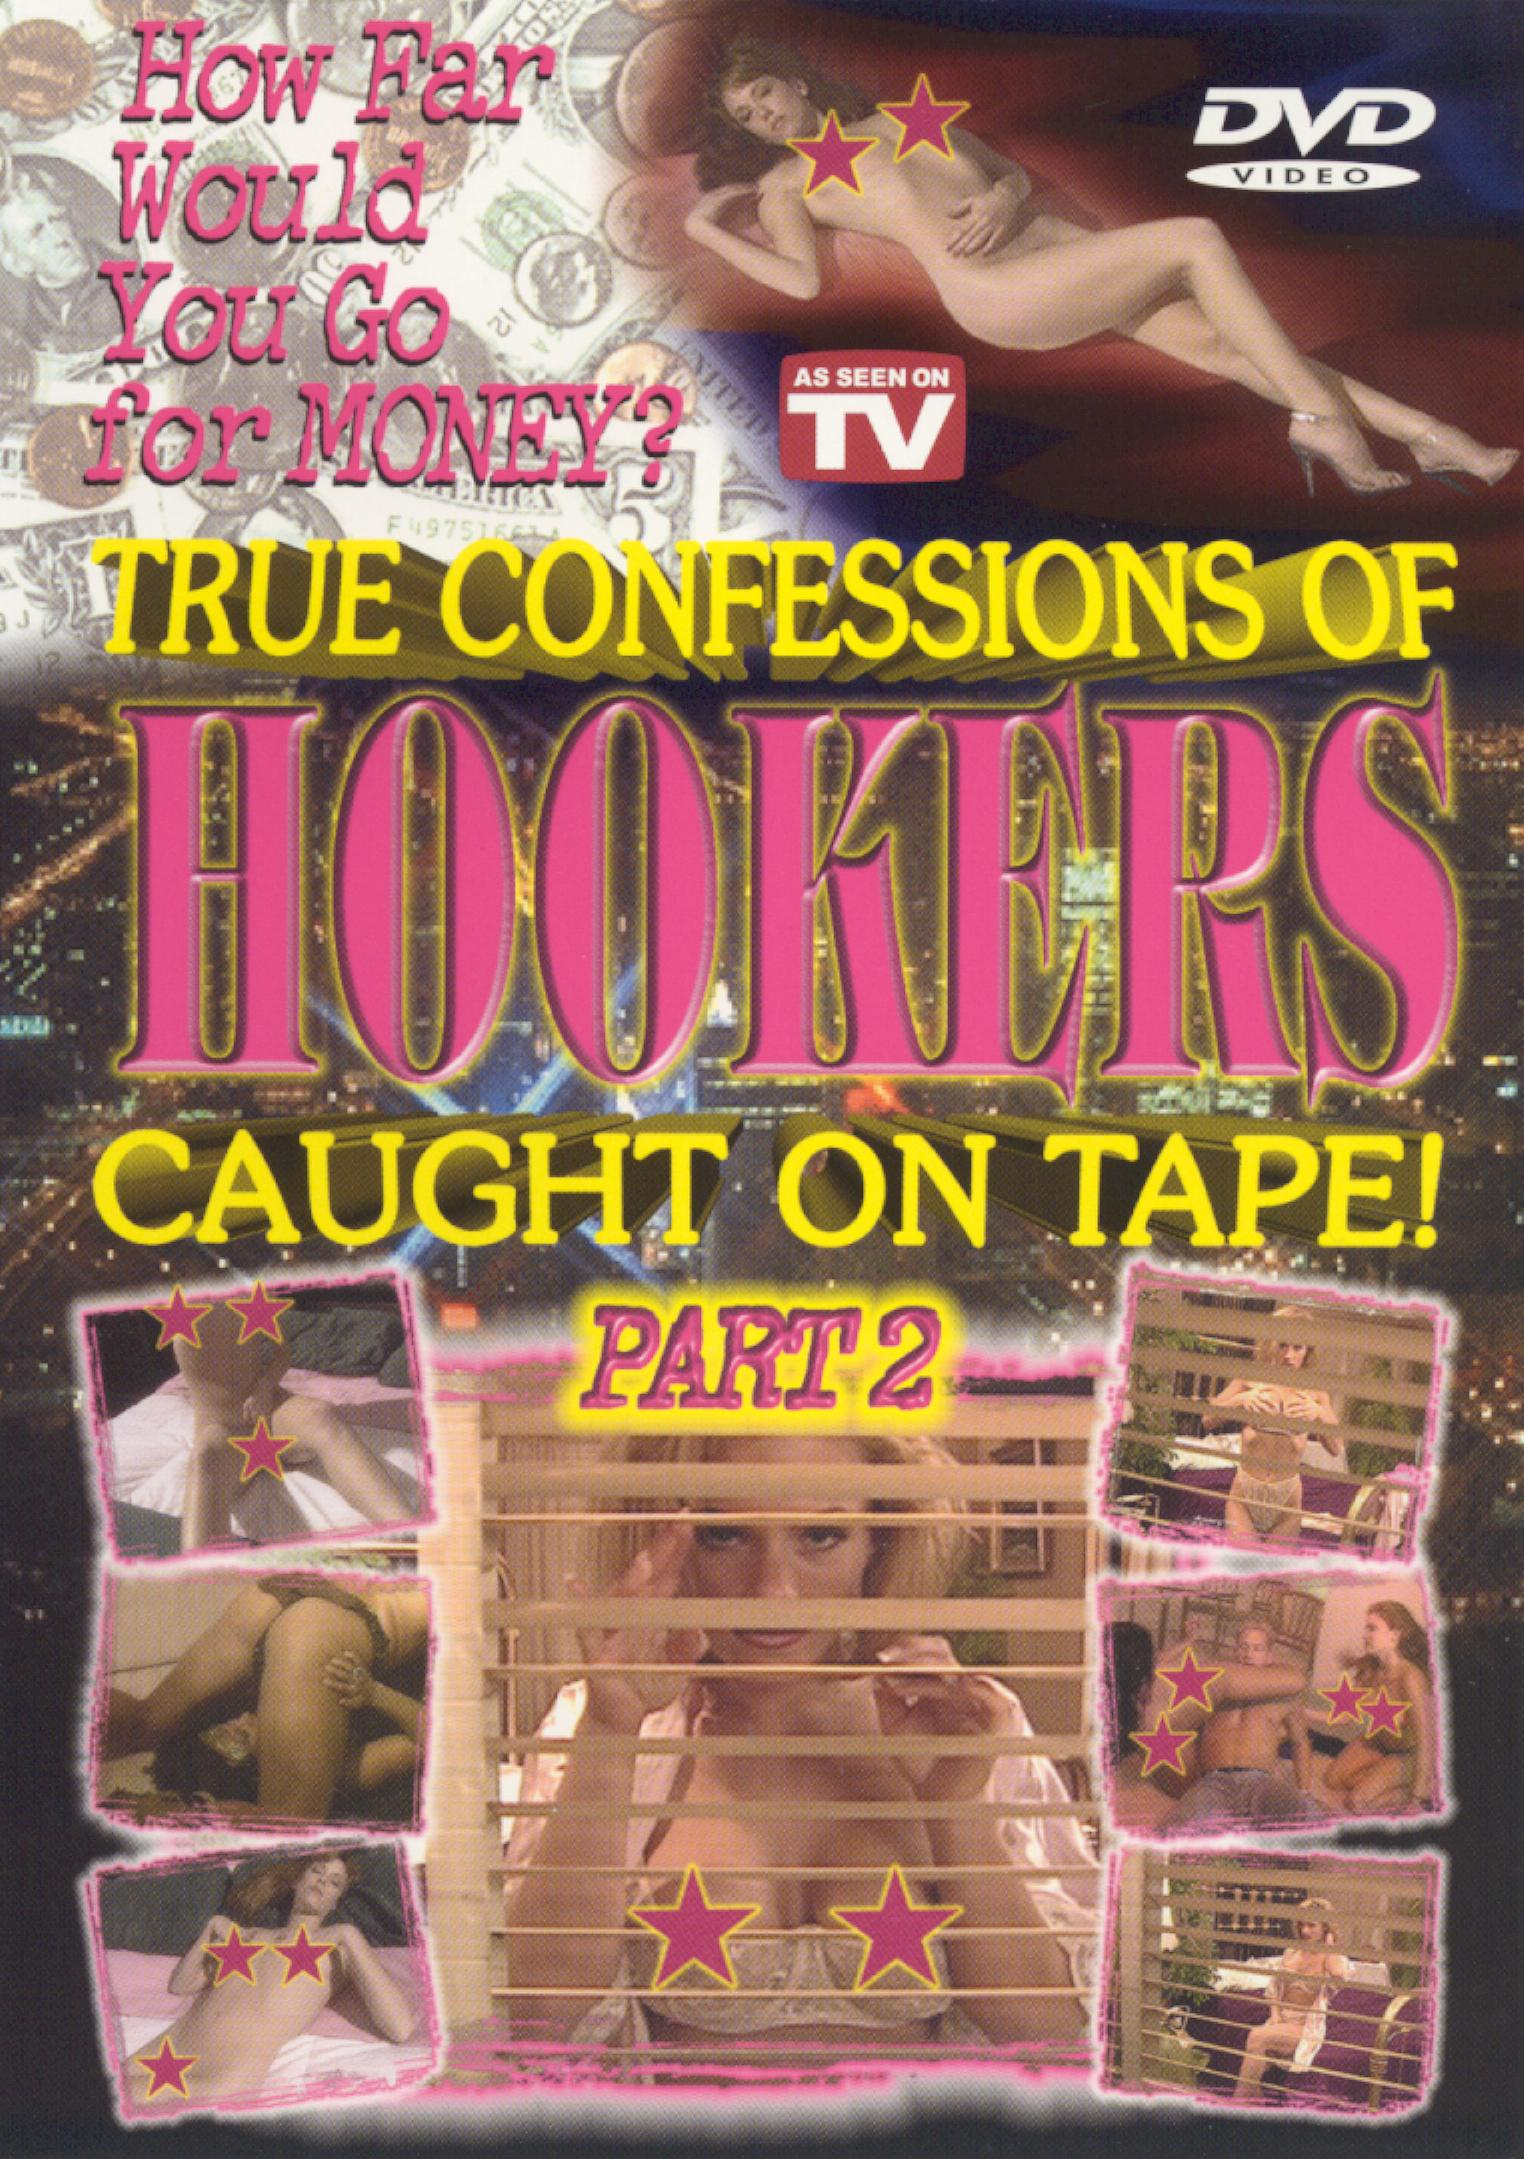 Caught on Tape: True Confessions of Hookers, Part 2